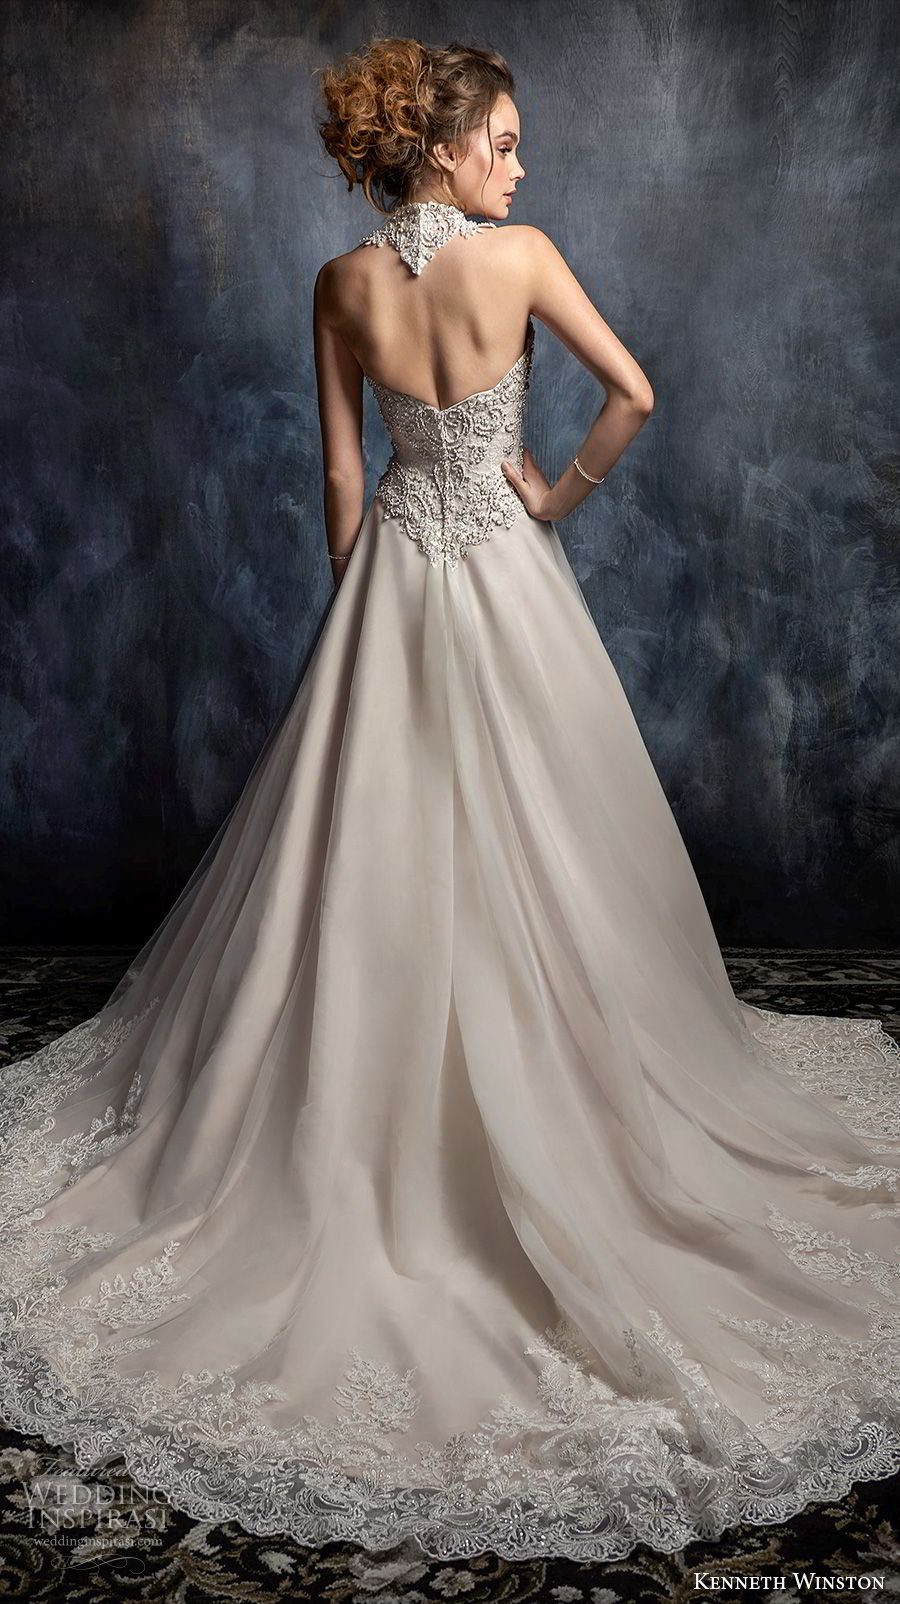 kenneth winston fall 2017 bridal sleeveless halter neck sweetheart neckline heavily embellished beaded bodice glamorous blush mermaid wedding dress open back chapel train (55) bv